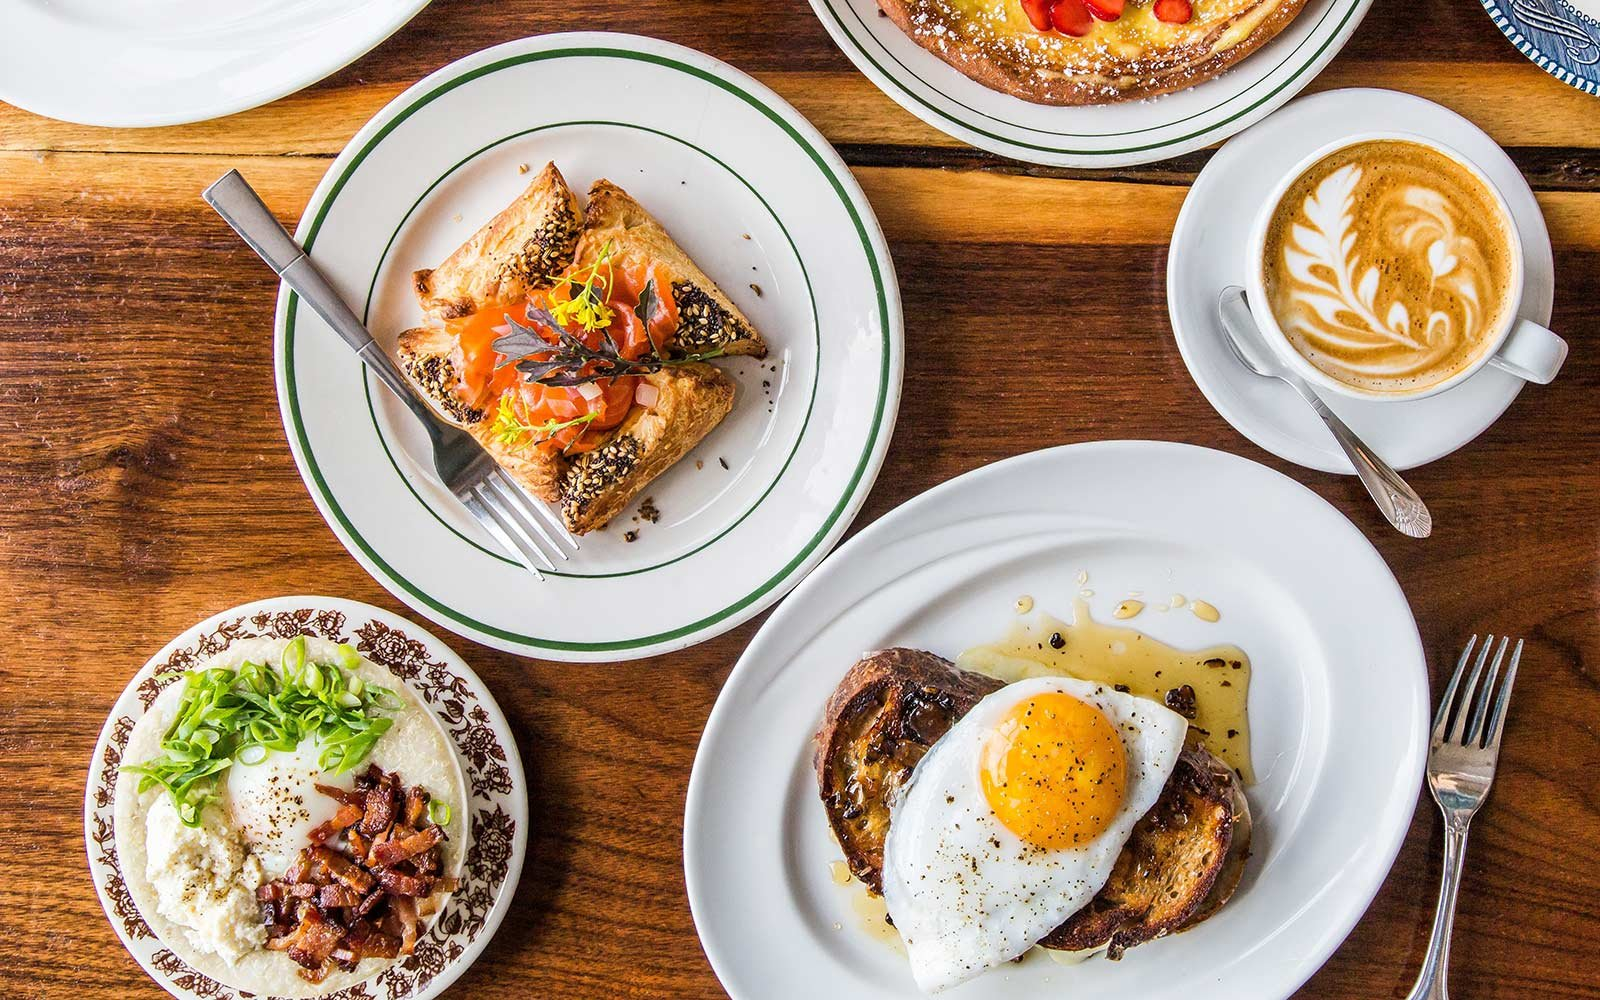 Cranberry Walnut and Raclette Grilled Cheese with Duck Egg, lox danish, quinoa with bacon and egg, Milktooth, Indianapolis, Indiana